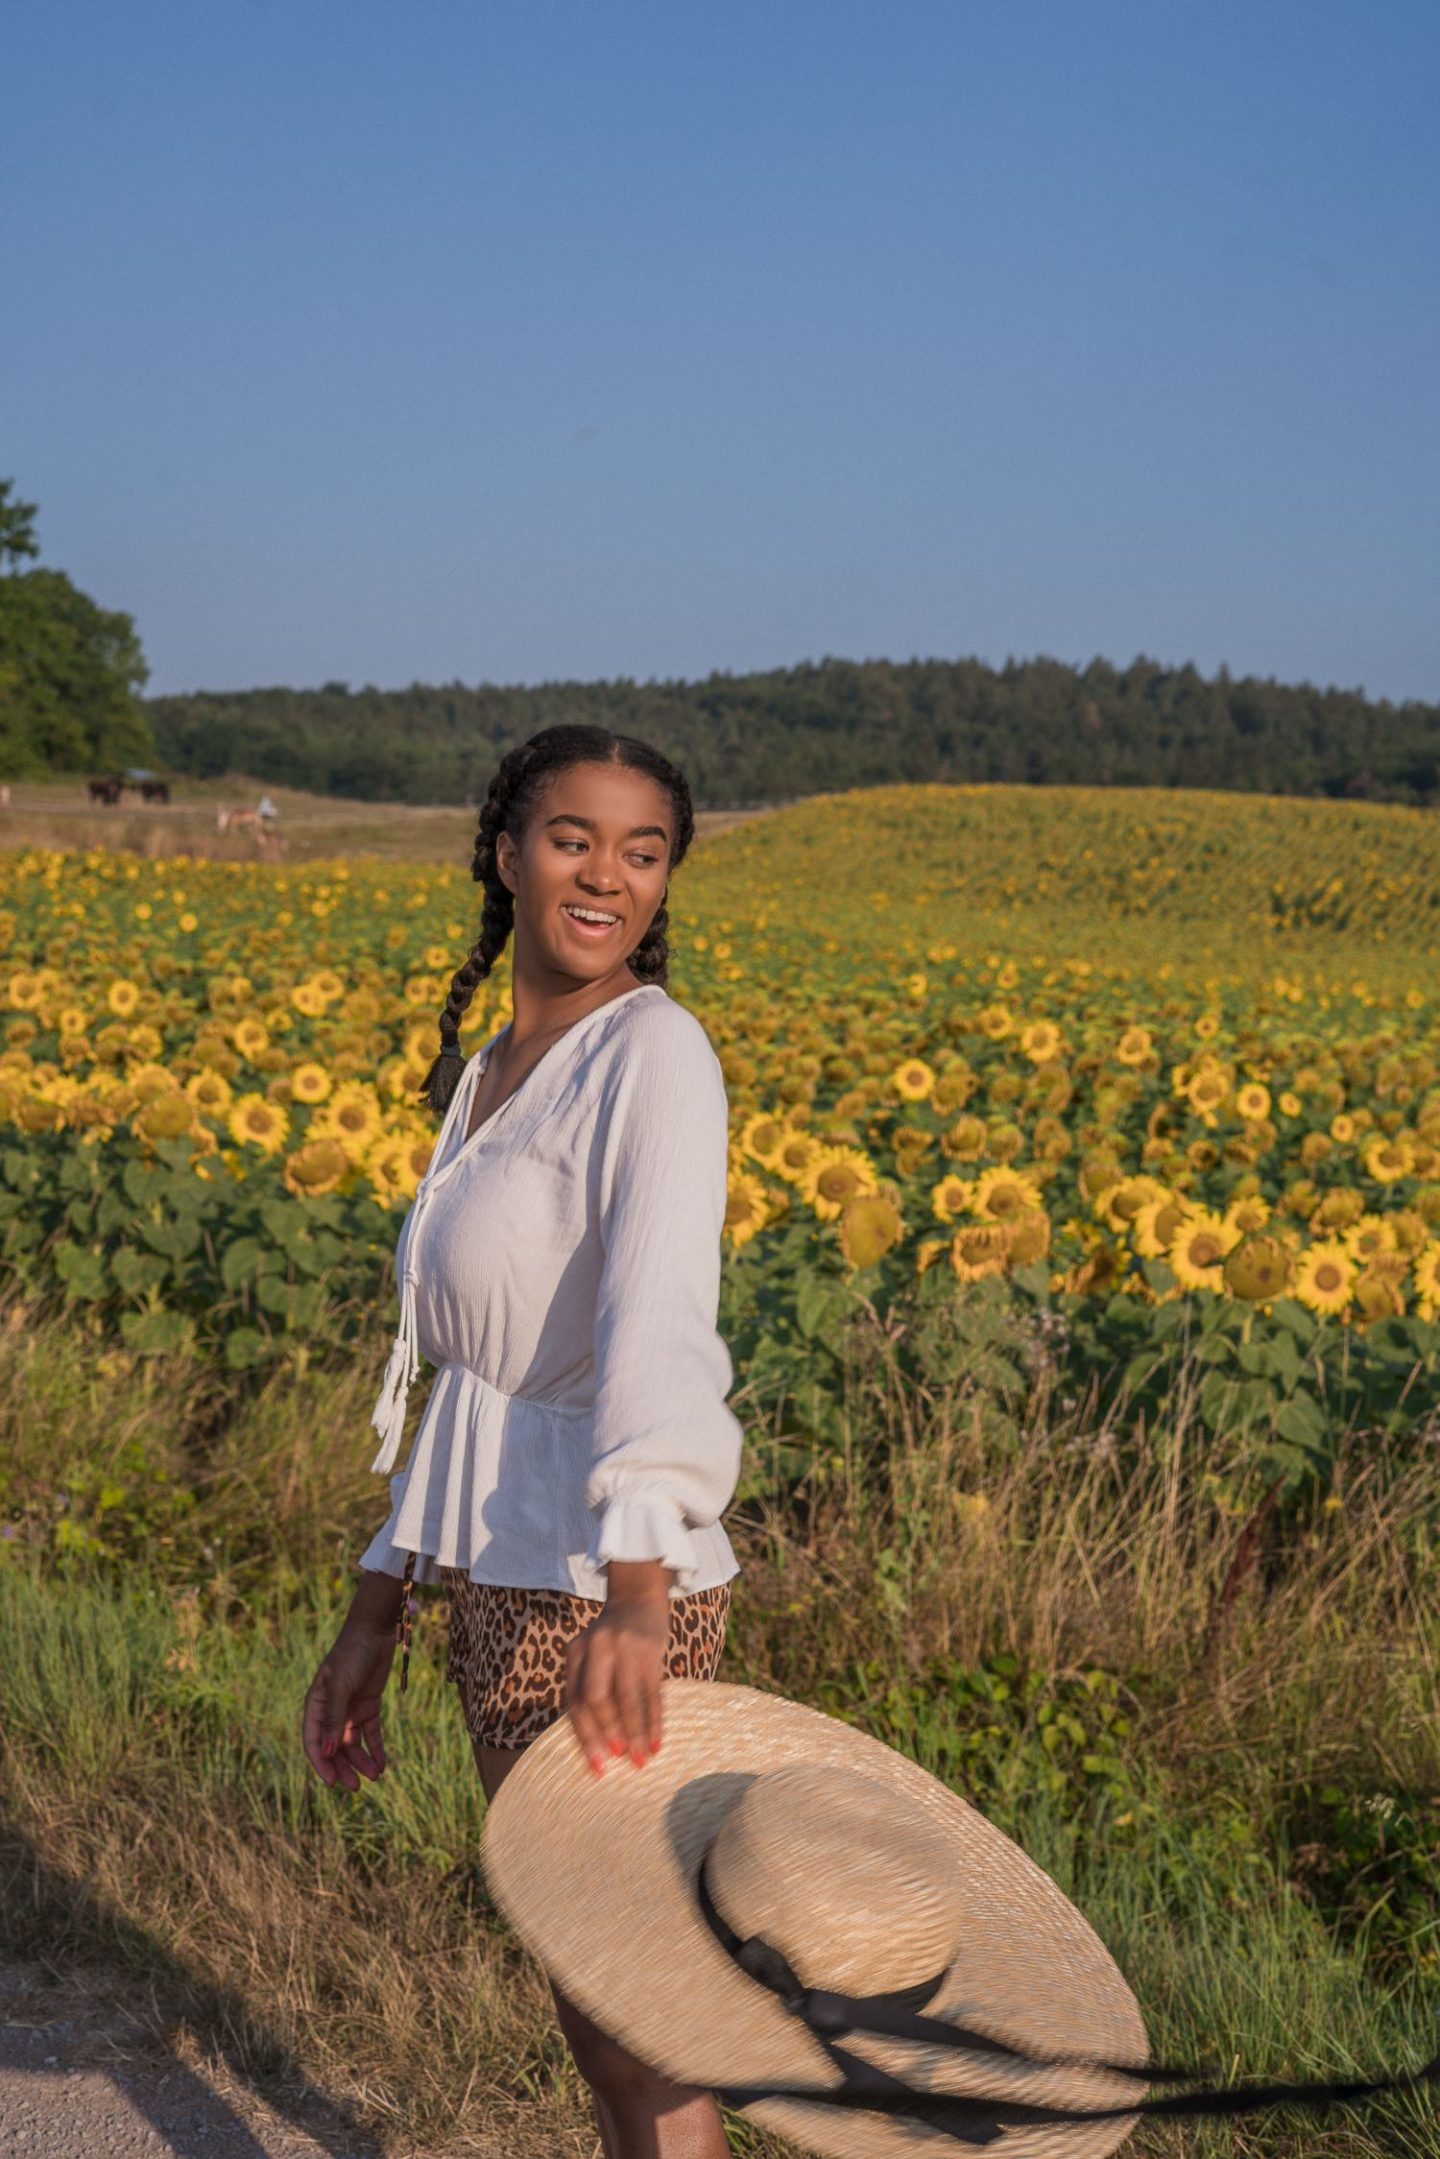 Black Fashion Blogger in a Sunflower Field wearing a hat in summer